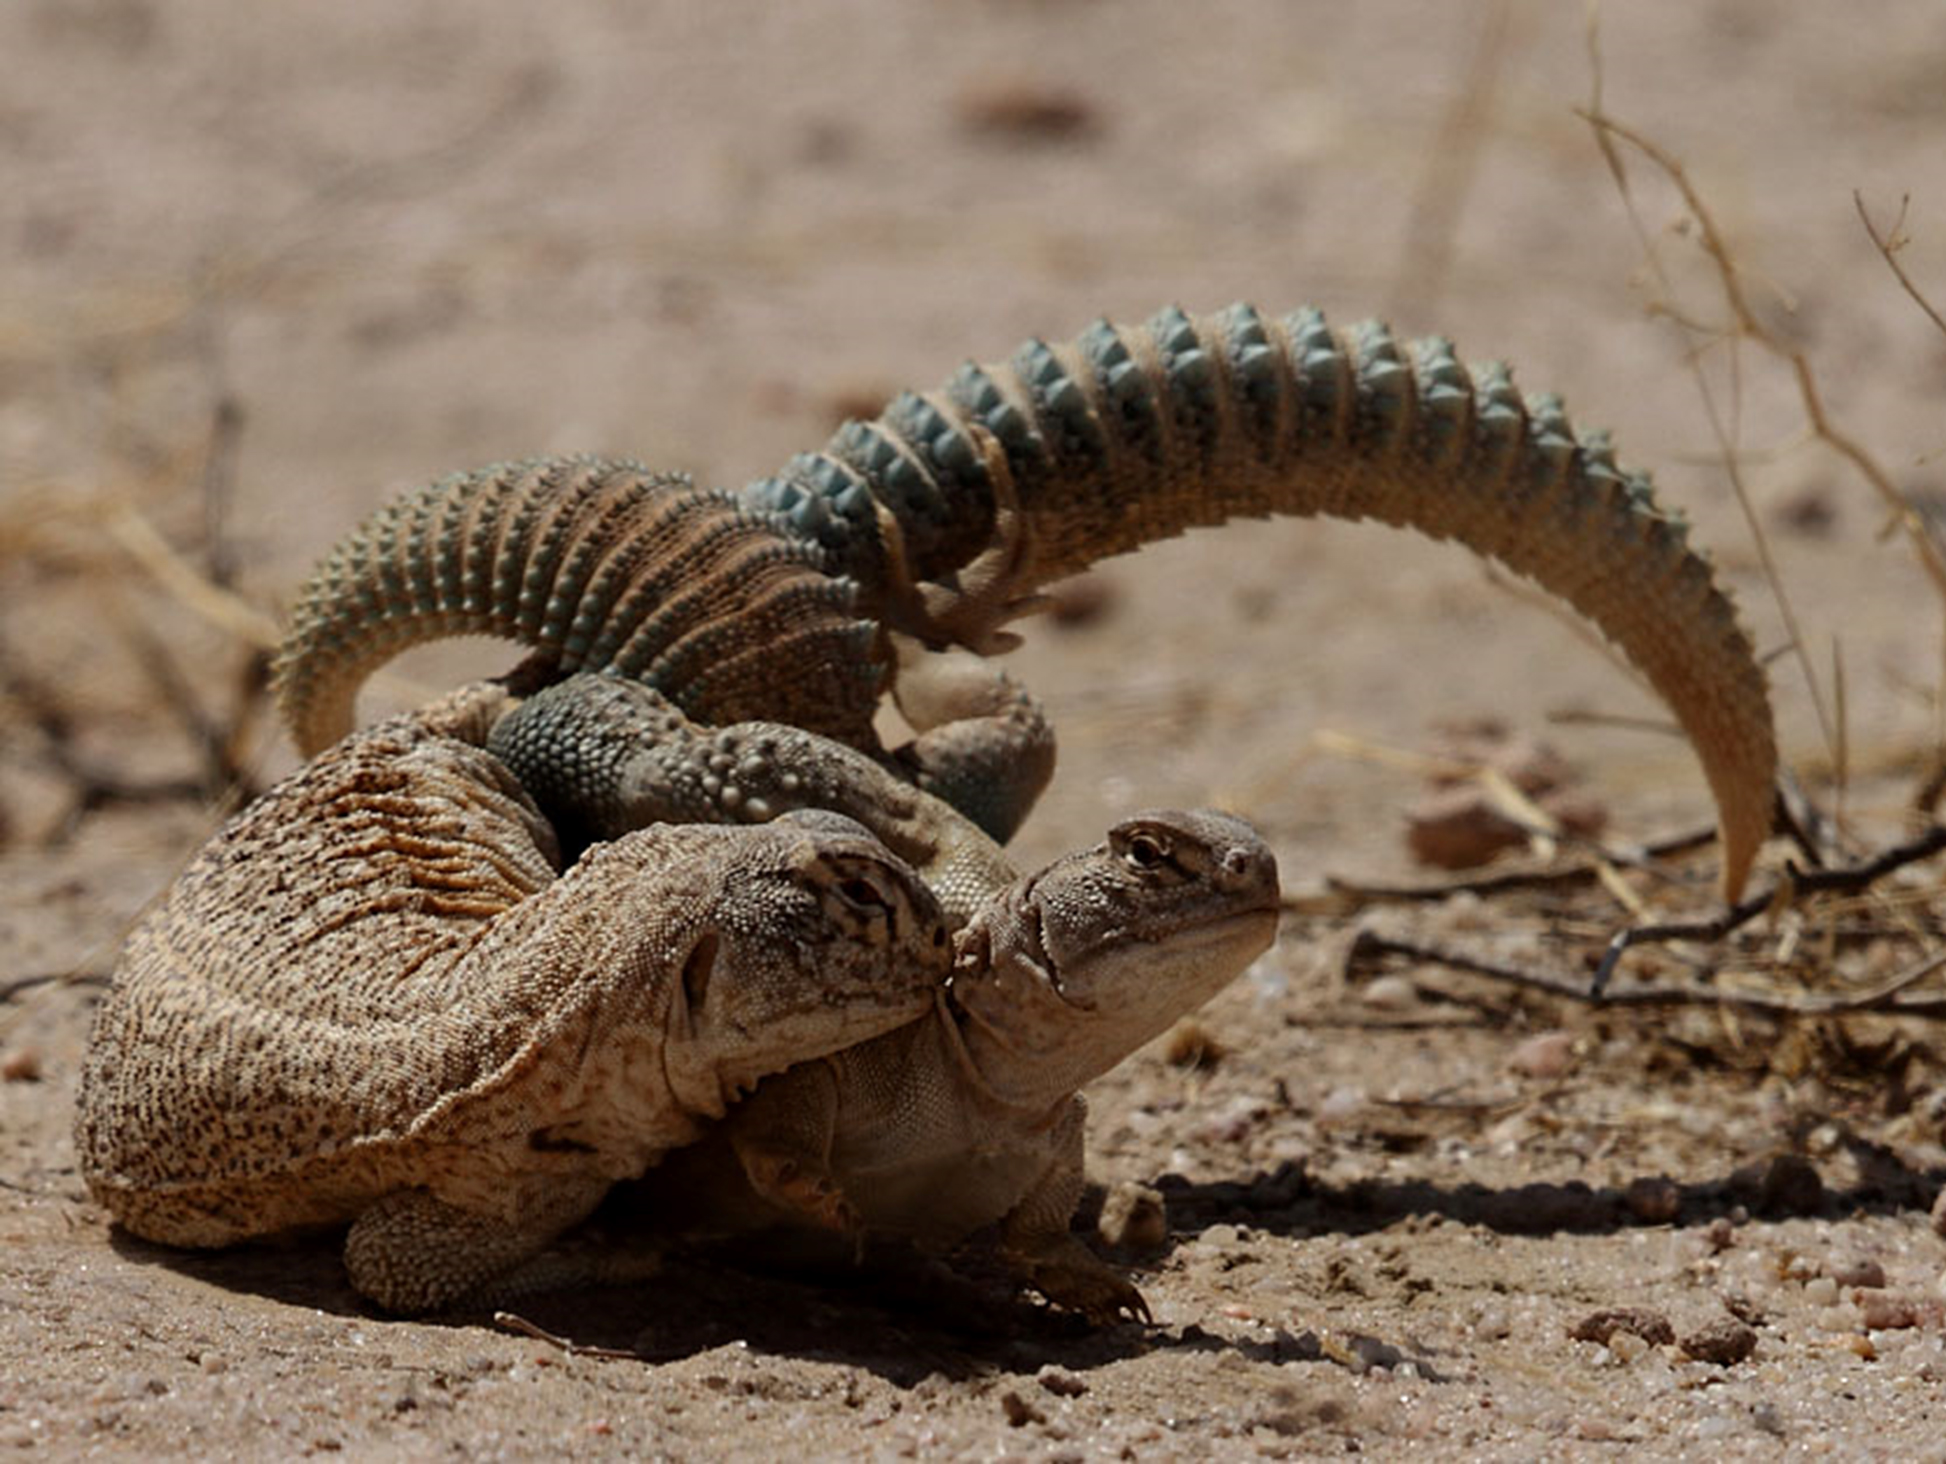 Spiny-tailed lizards. The species is found in patches across the Thar desert, Kutch, and surrounding arid zones in India and Pakistan. Photo by Gobind Sagar Bhardwaj.